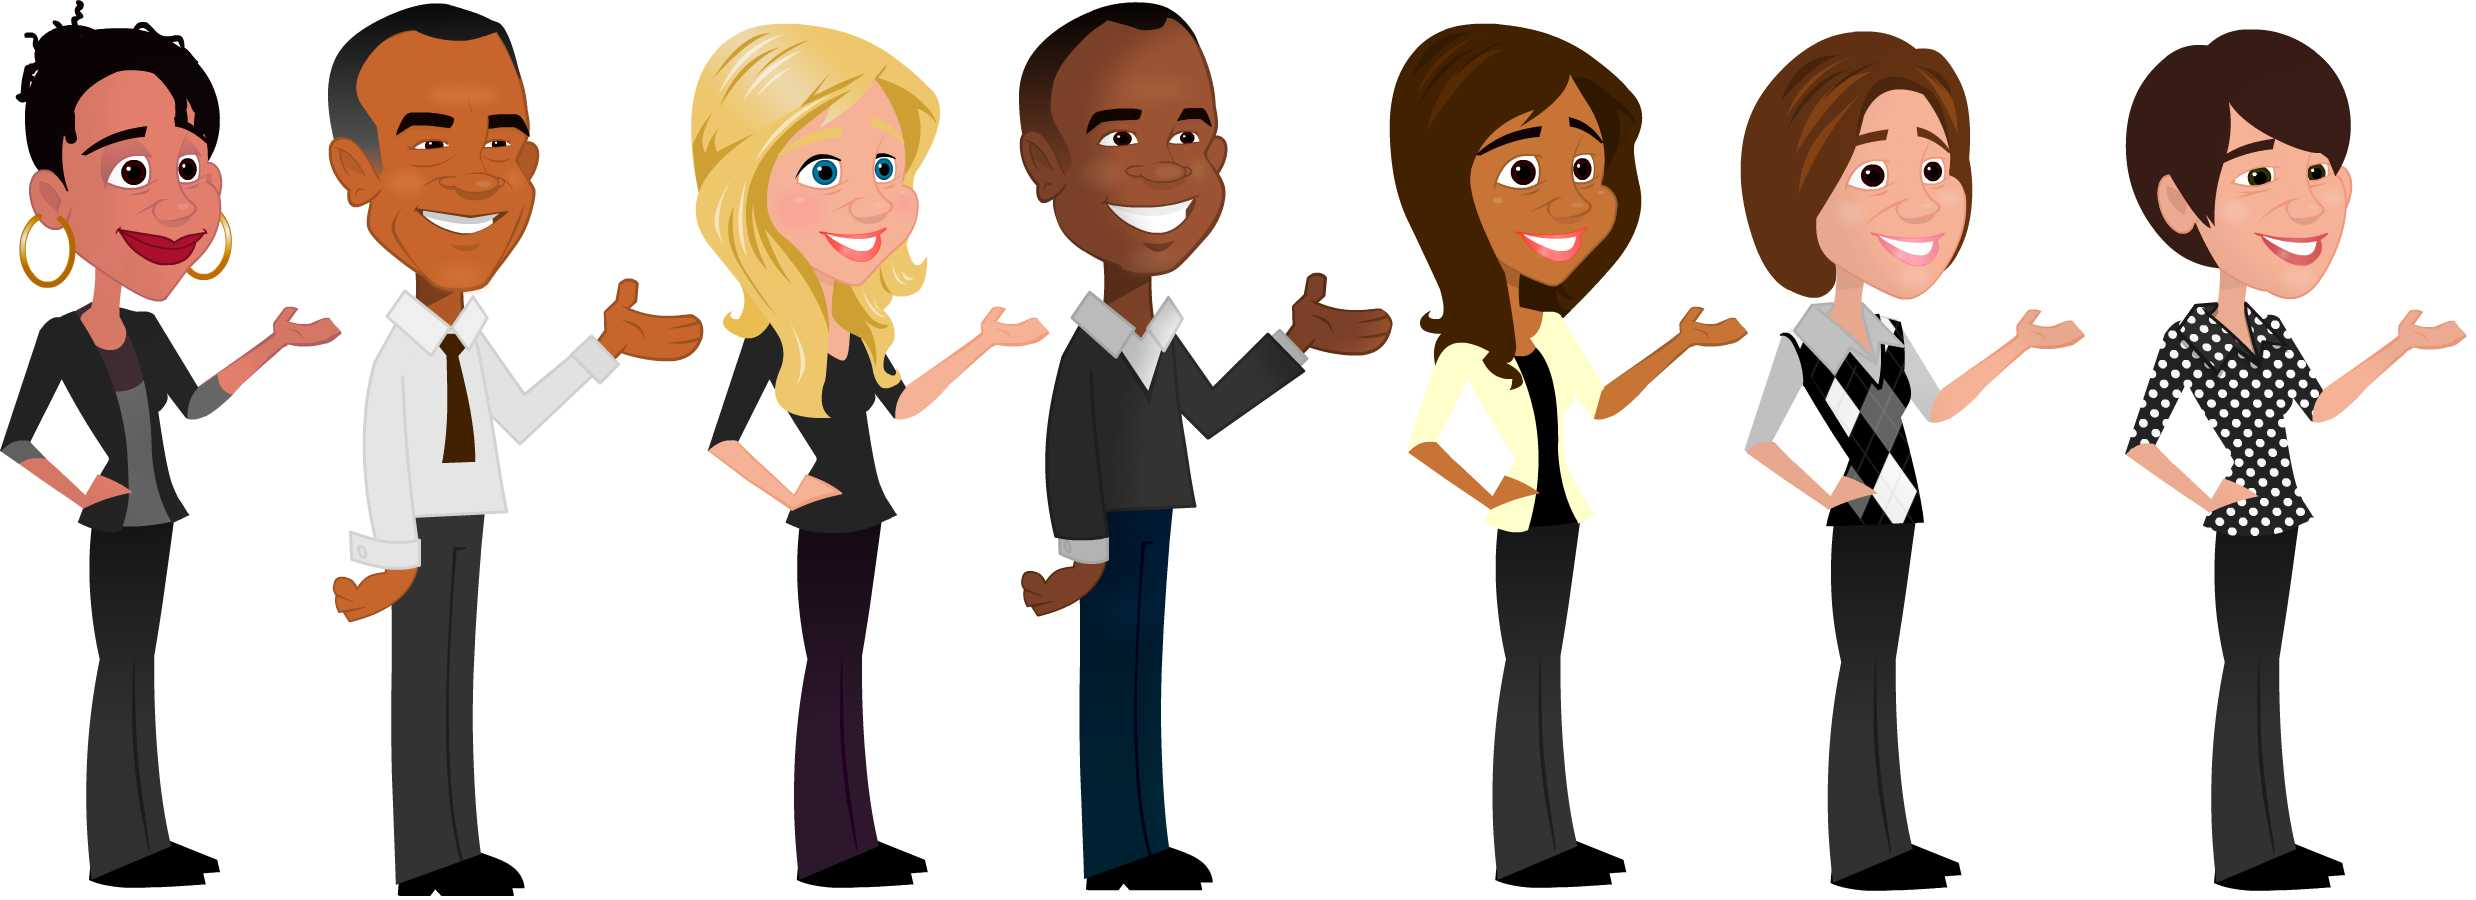 Free Cliparts Diversity People, Download Free Clip Art, Free.